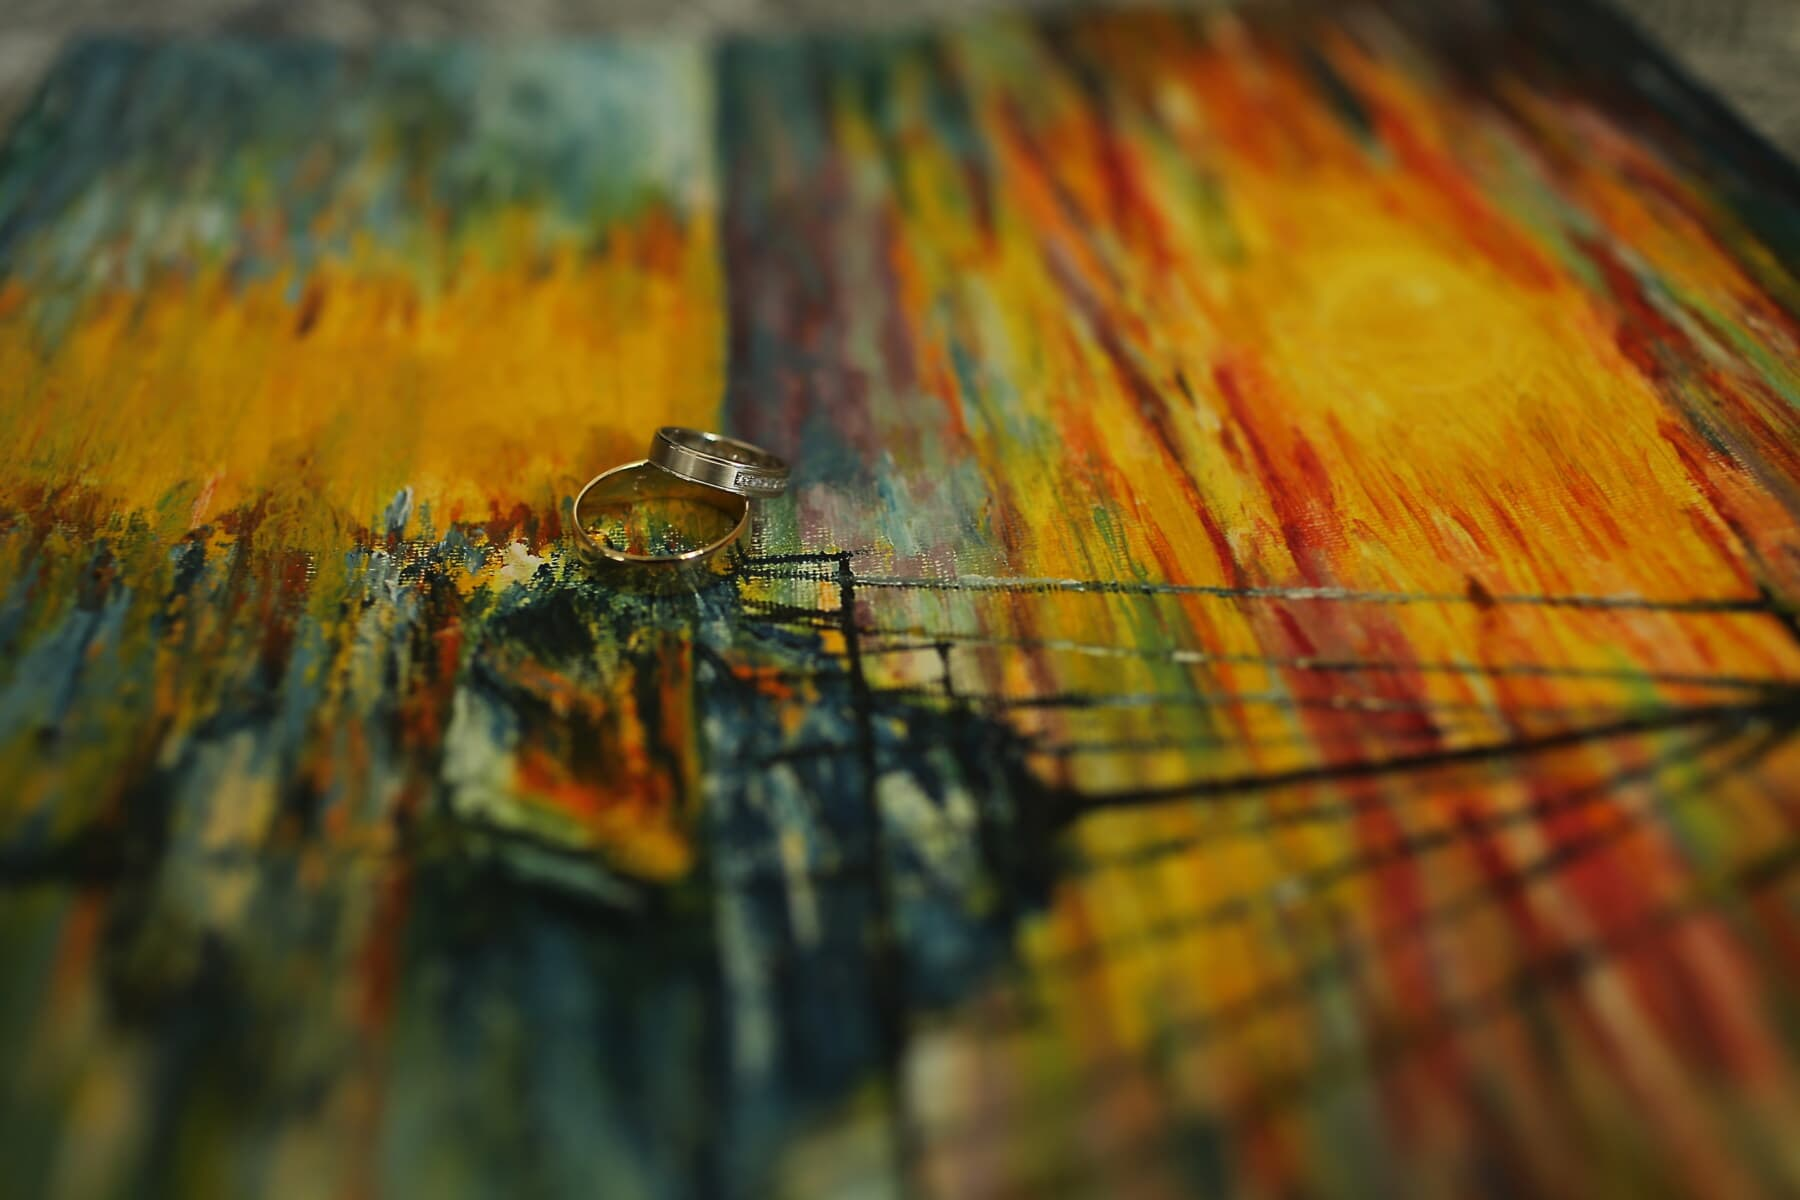 golden shine, rings, canvas, fine arts, colorful, art, painting, abstract, color, blur